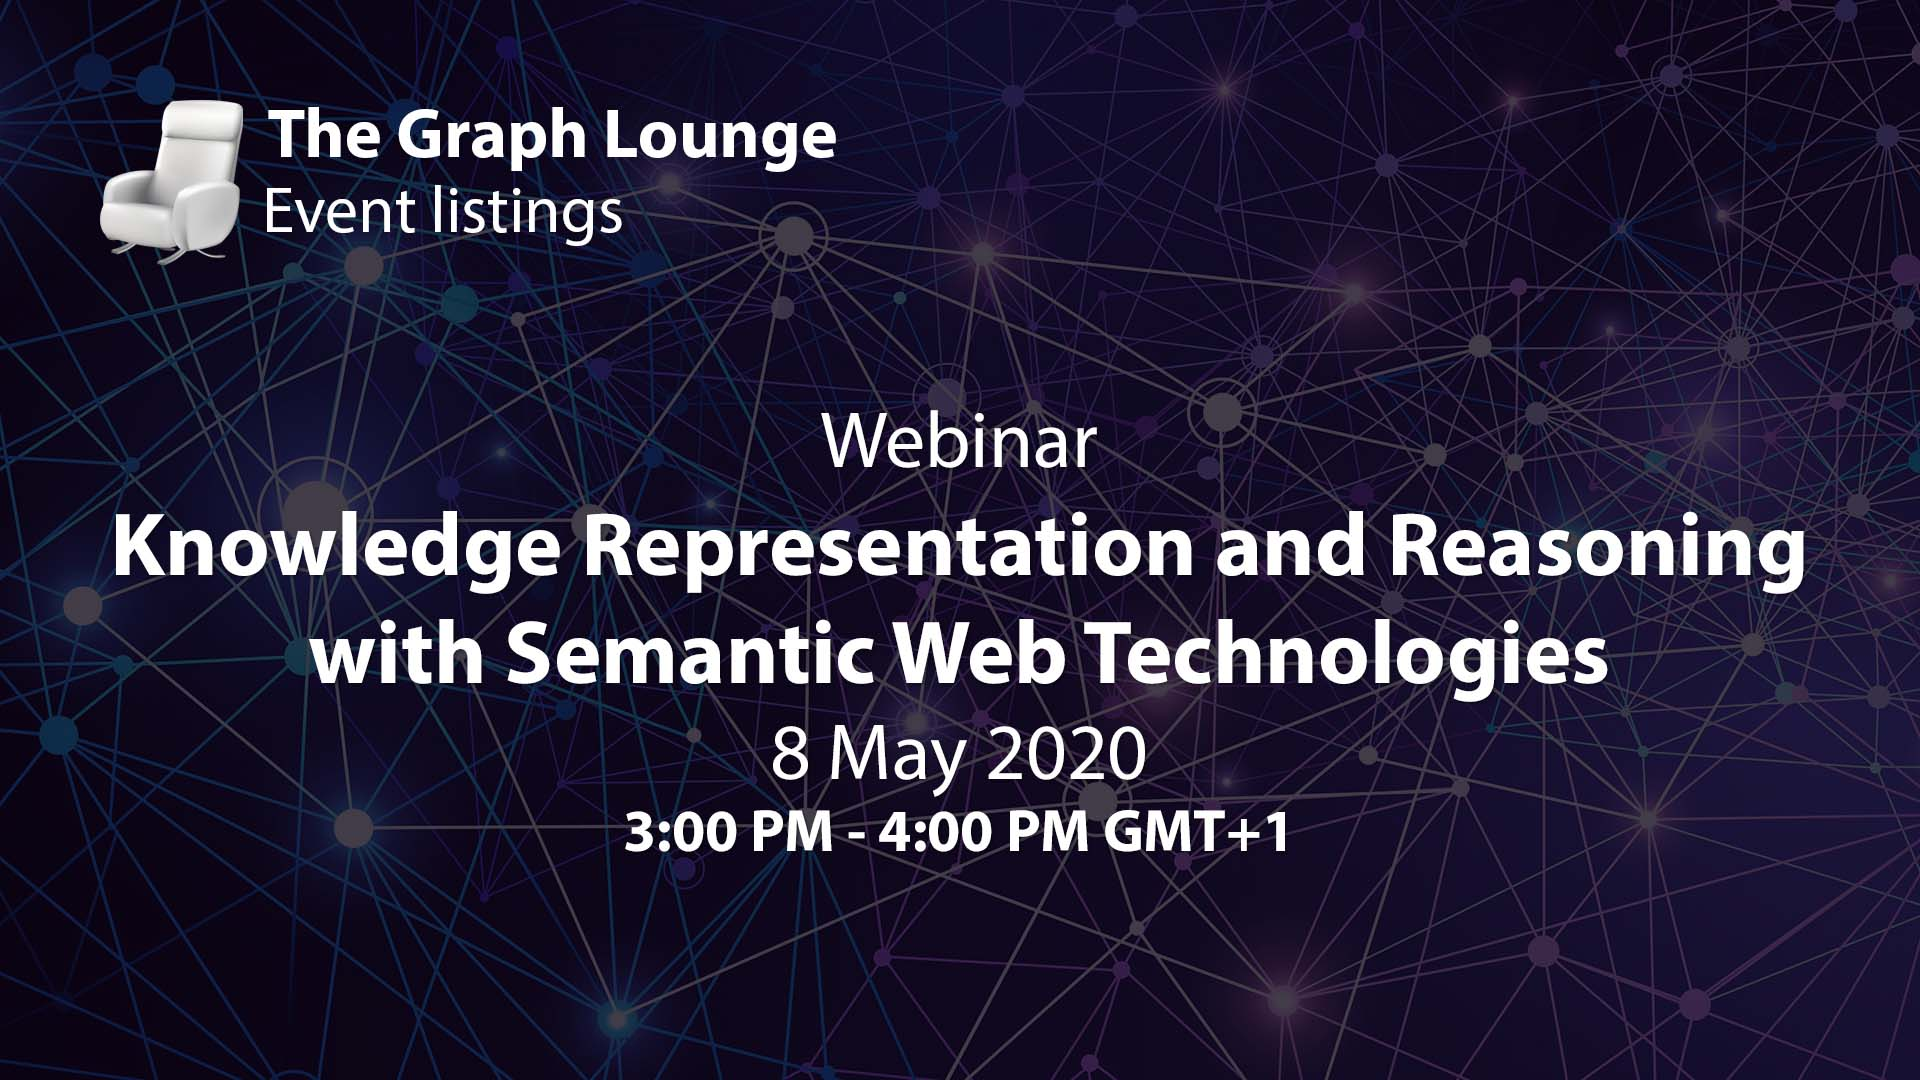 Knowledge Representation and Reasoning with Semantic Web Technologies